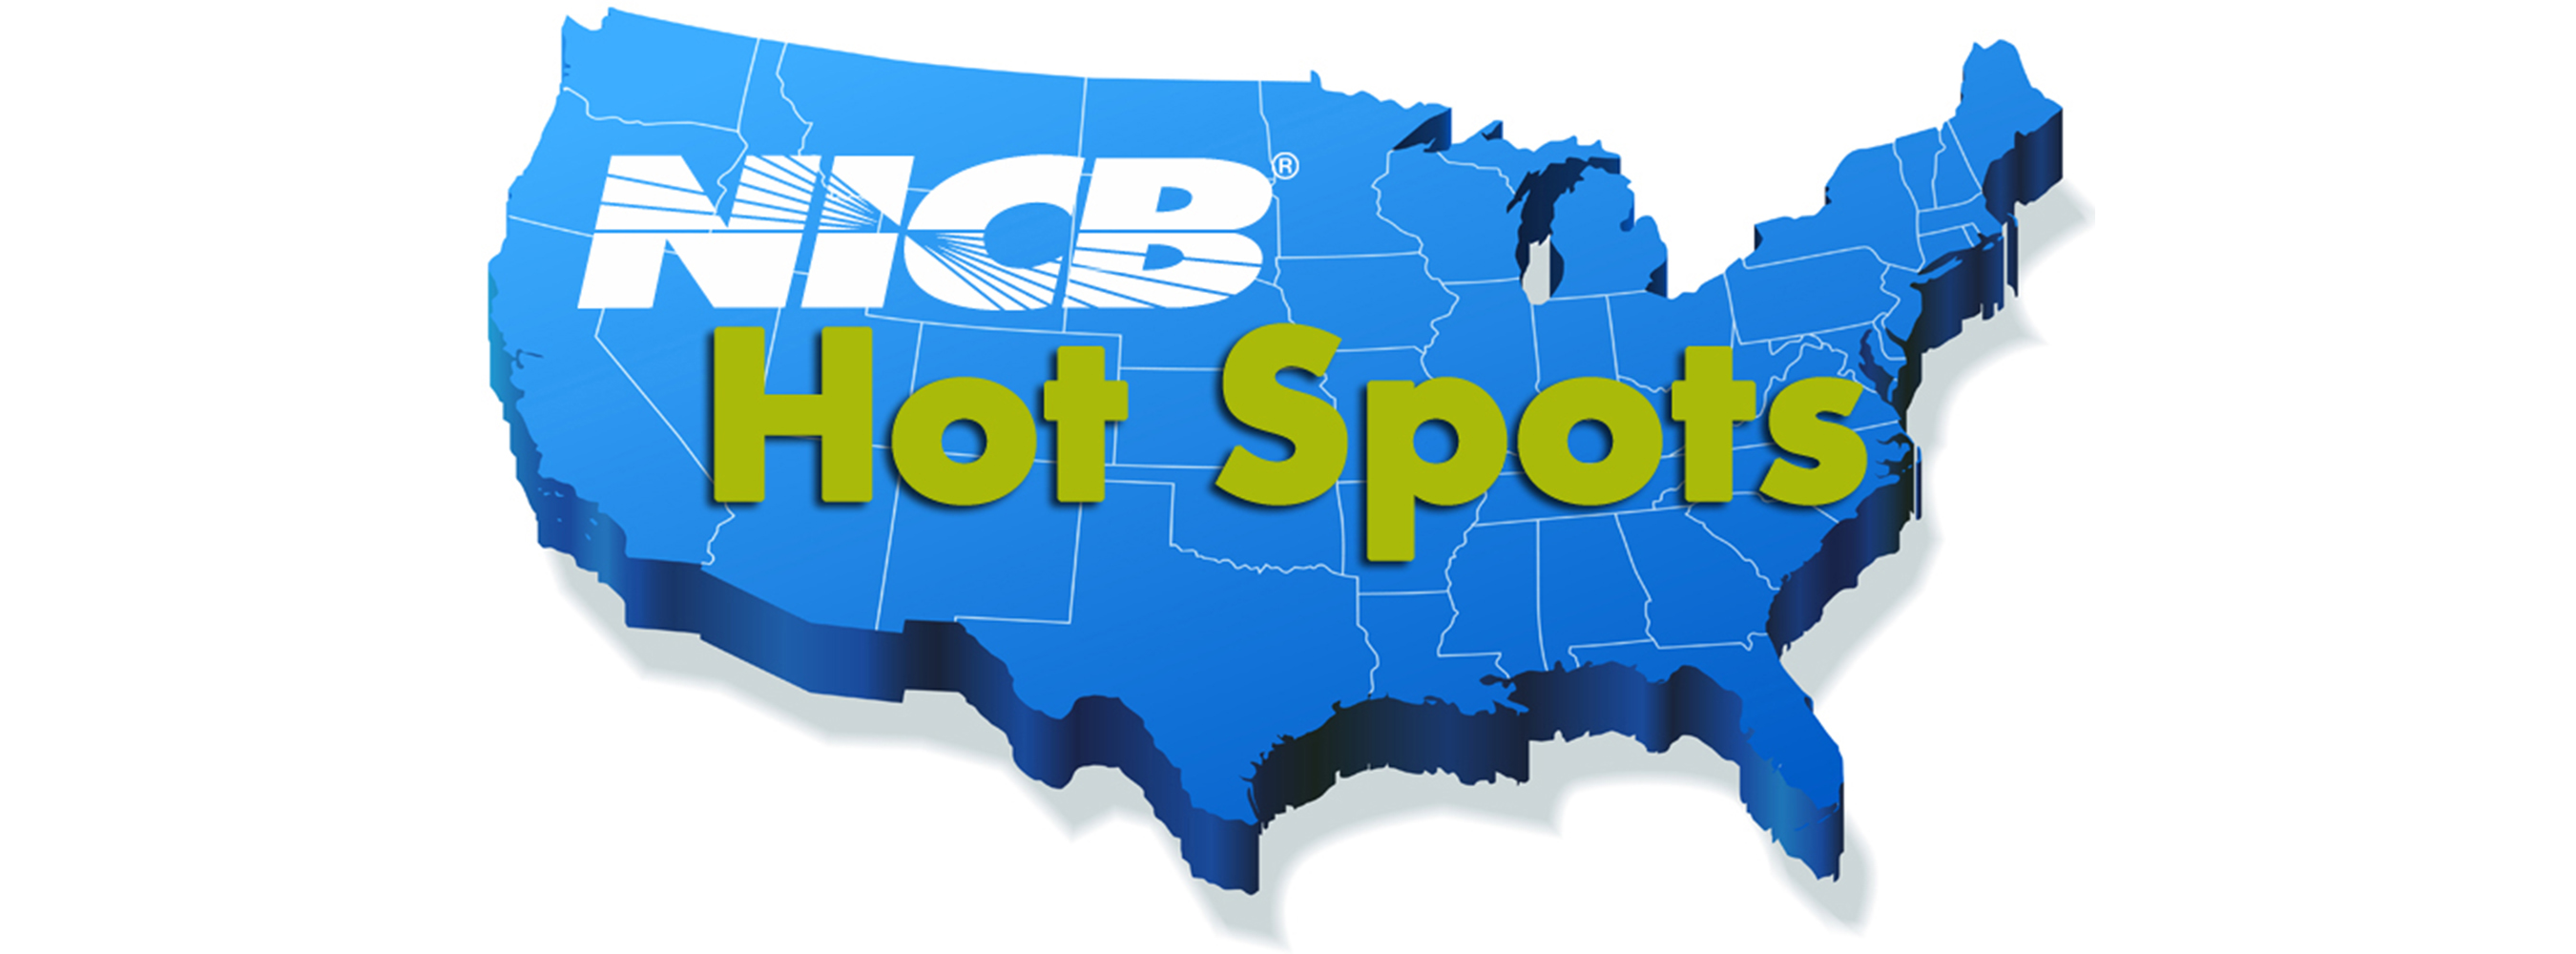 NICB's 2016 Hot Spots Vehicle Theft Report